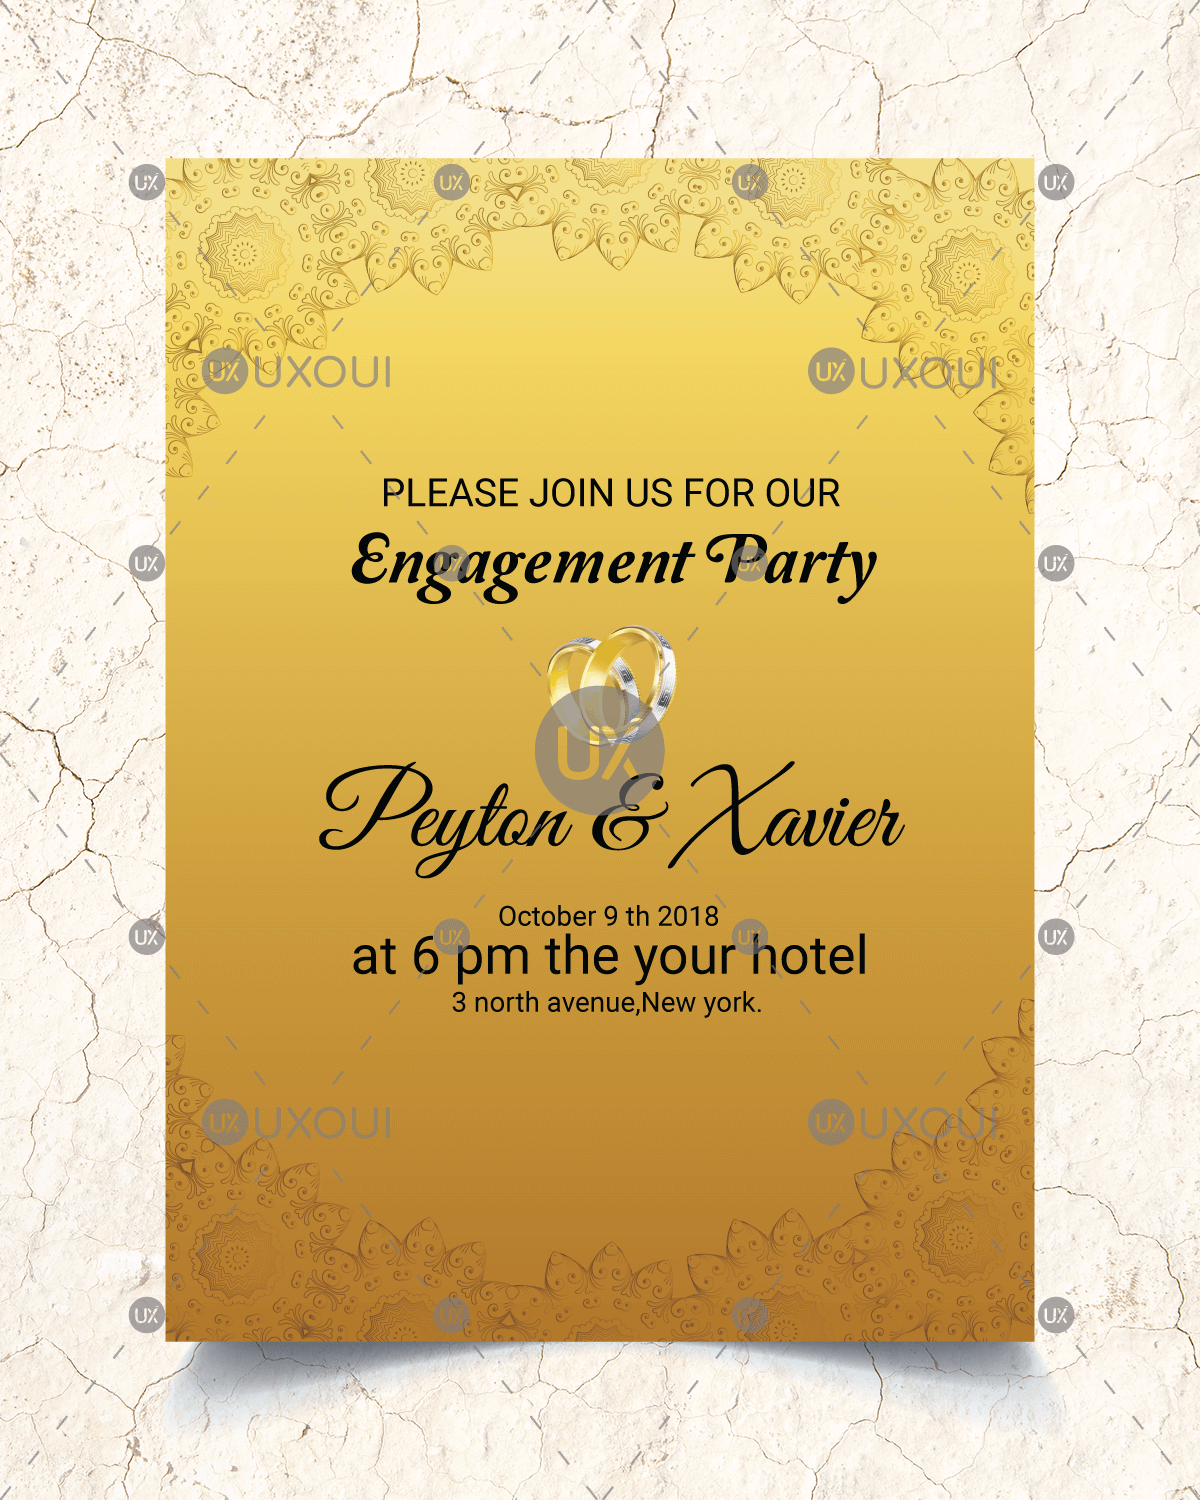 Golden Wedding Engagement Party Invitation Card Template Design Vector